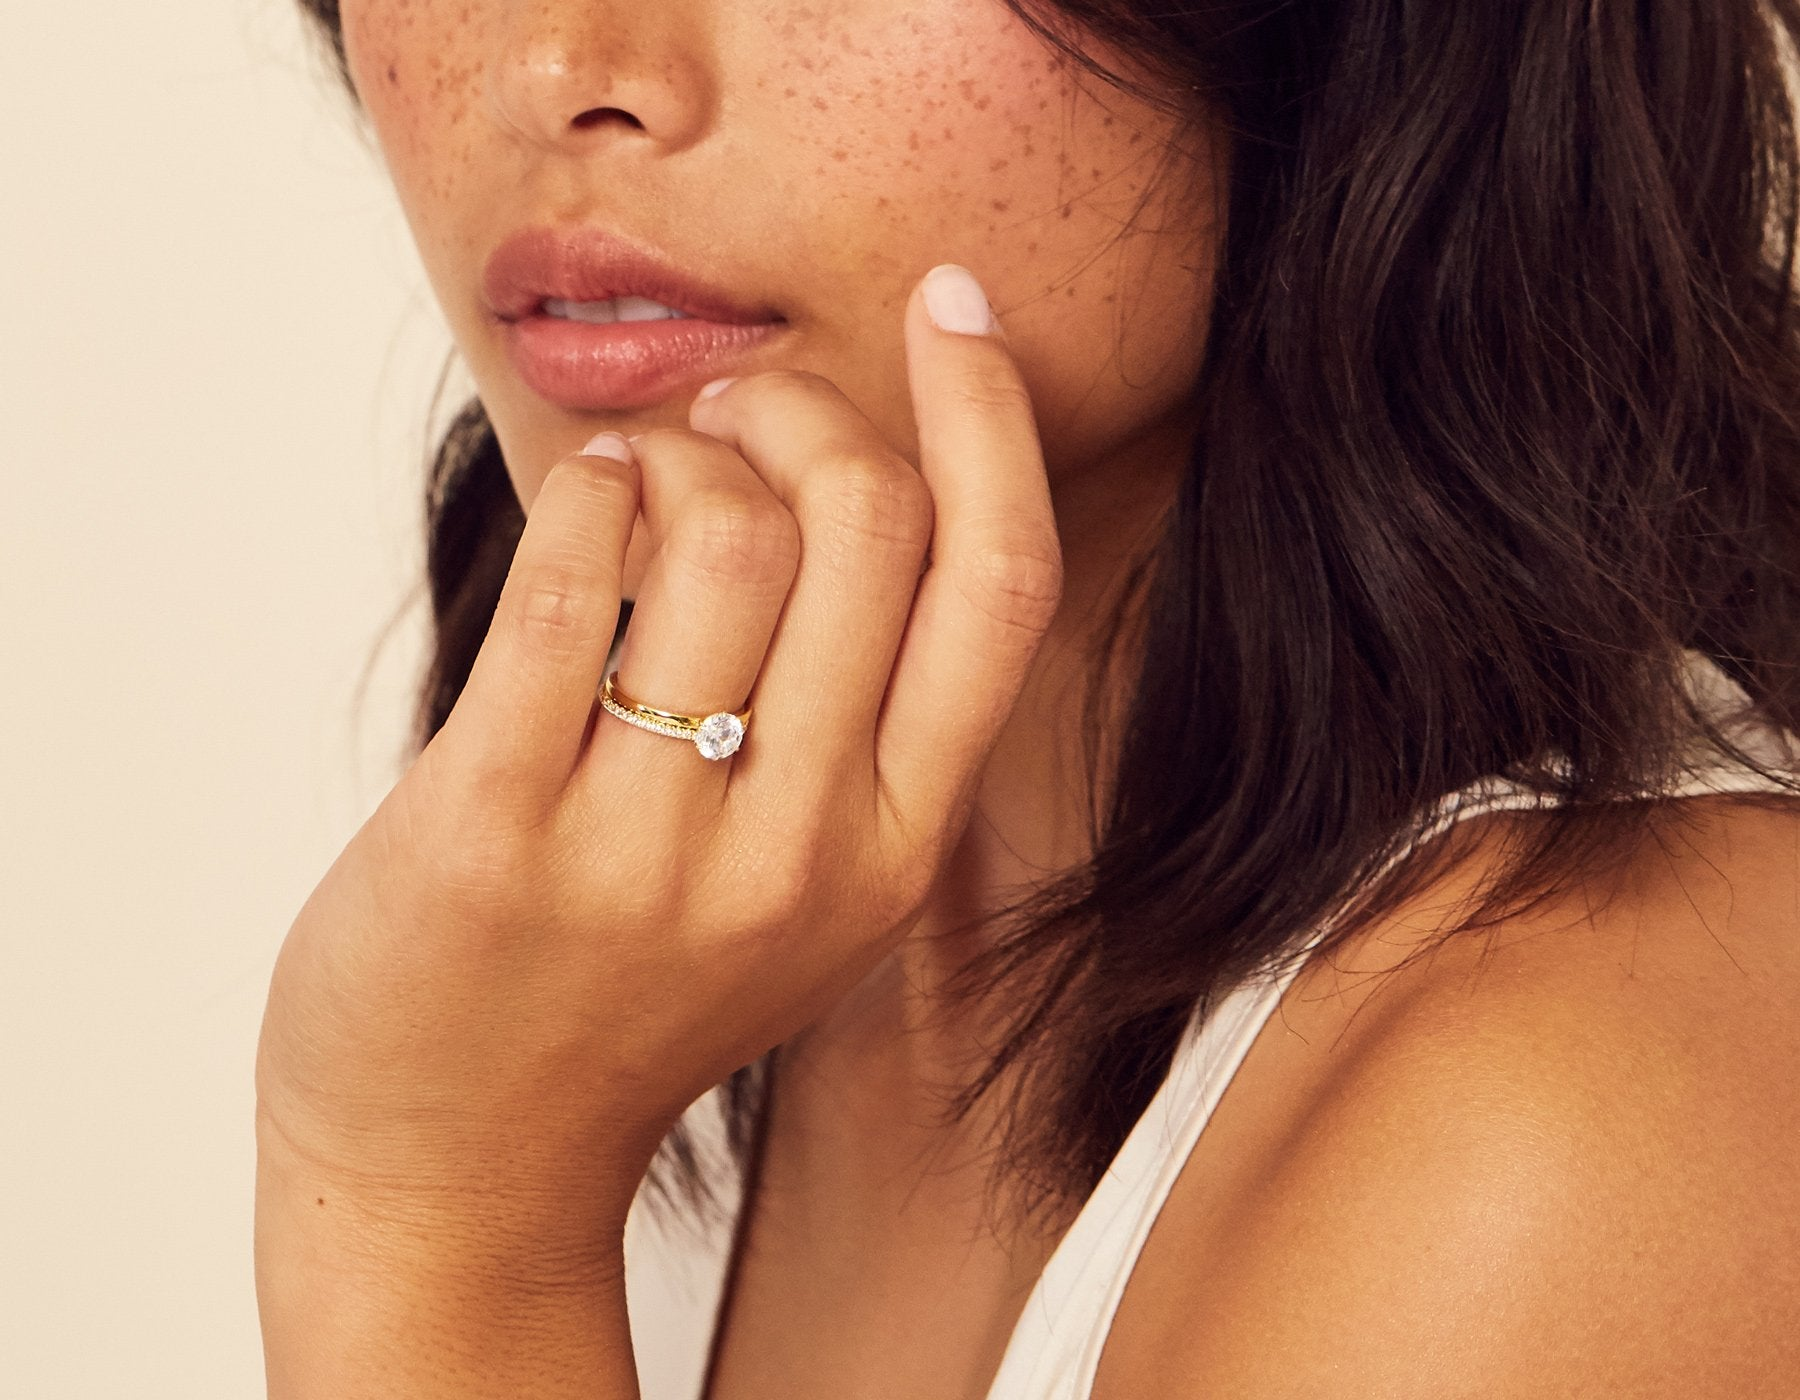 Model wearing Solitaire Diamond Engagement Ring with Infinity Wedding Band Vrai & Oro Modern minimalist Sustainable diamond foundry